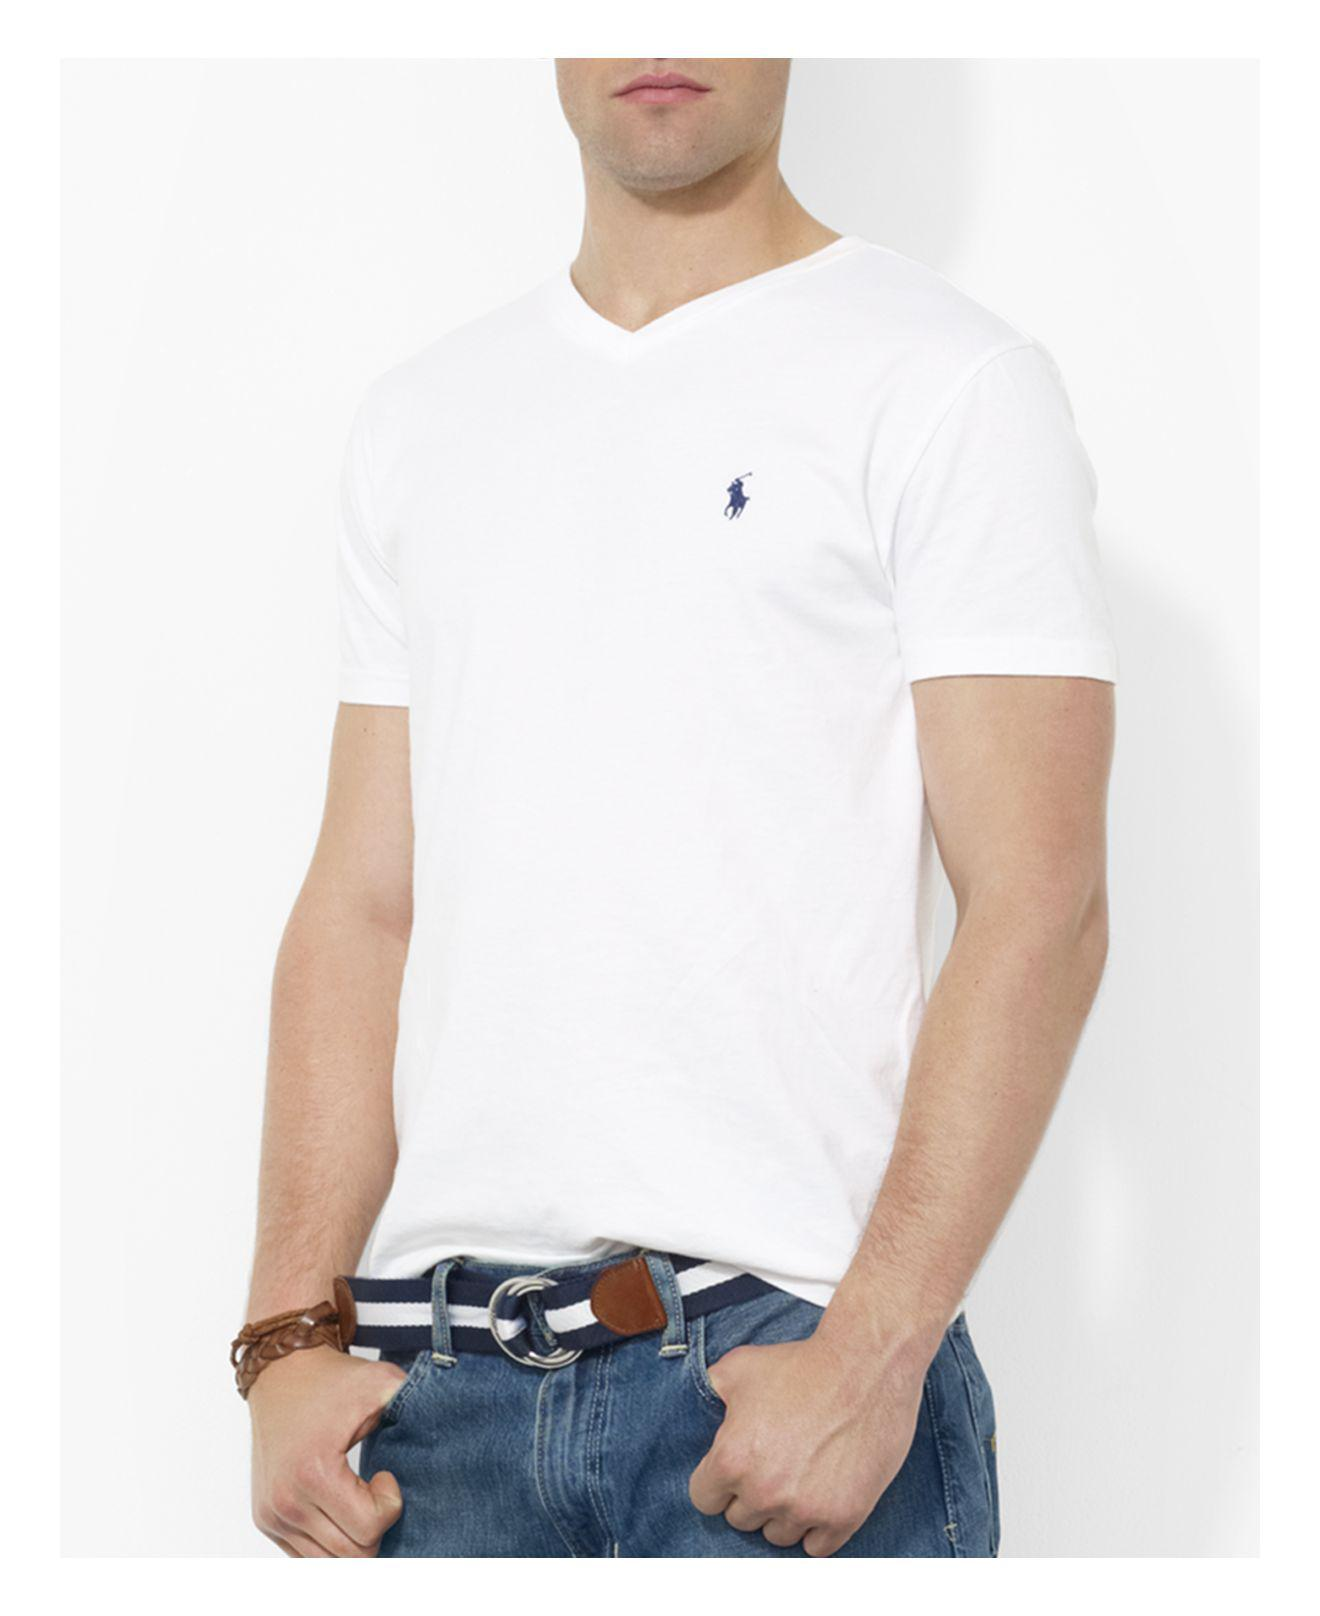 3f1f72049 ... closeout lyst polo ralph lauren cotton v neck tee in white for men  b1eb6 c4101